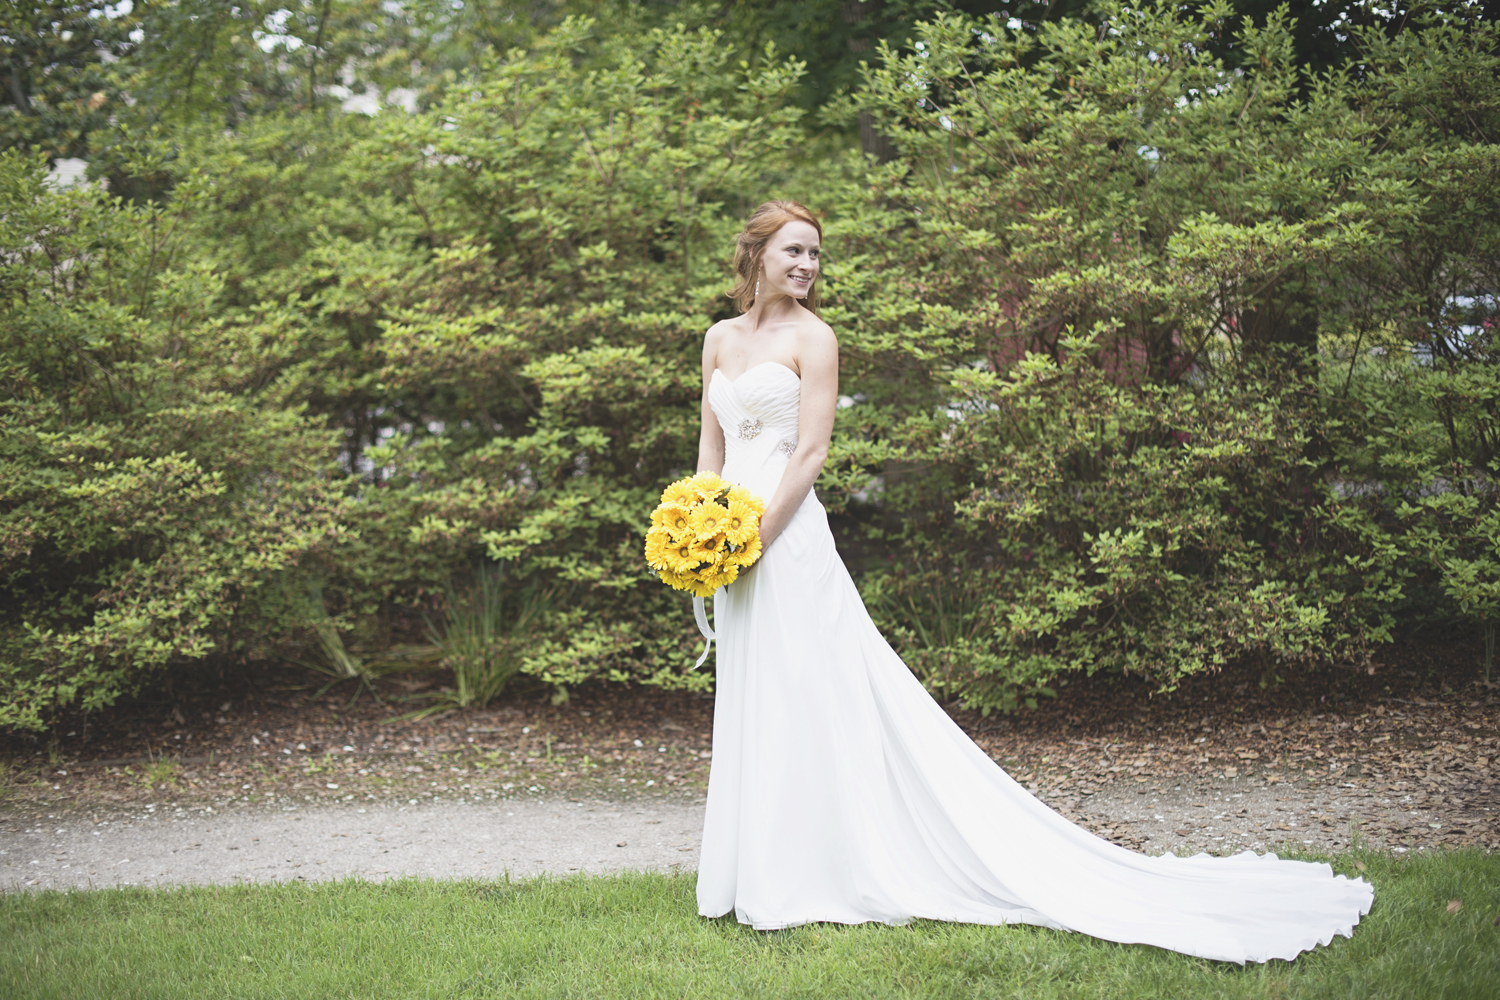 Mariners Museum Wedding | Newport News, Virginia |  Bridal portrait with yellow daisy bouquet